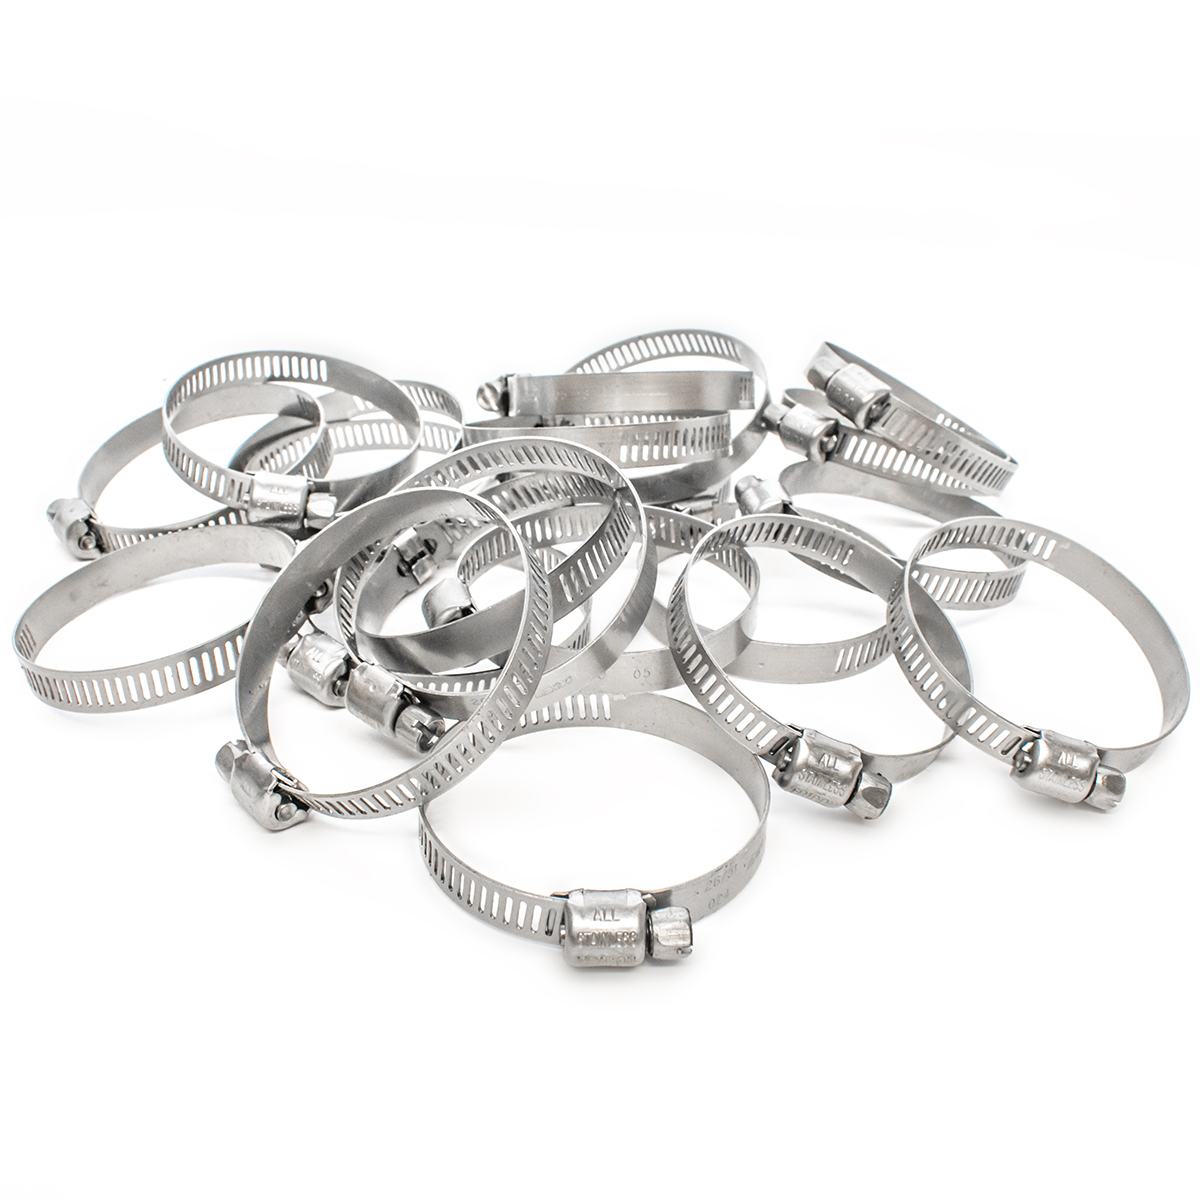 Stainless Steel Jubilee Type Hose Clips Air Line Fuel Pipe